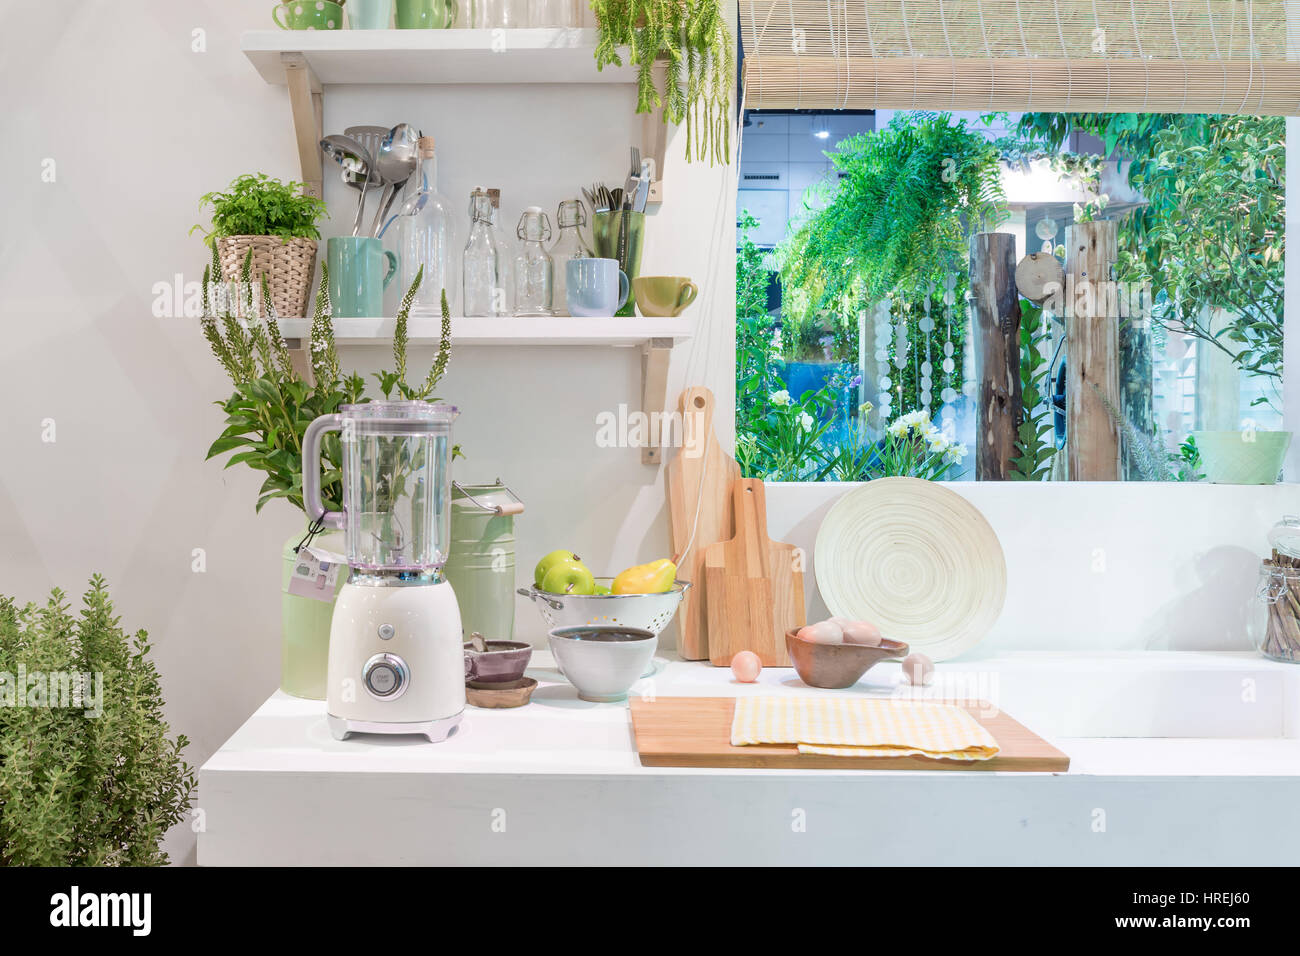 Interior of modern kitchen with blender, block, knife and kitchen appliance in house. - Stock Image